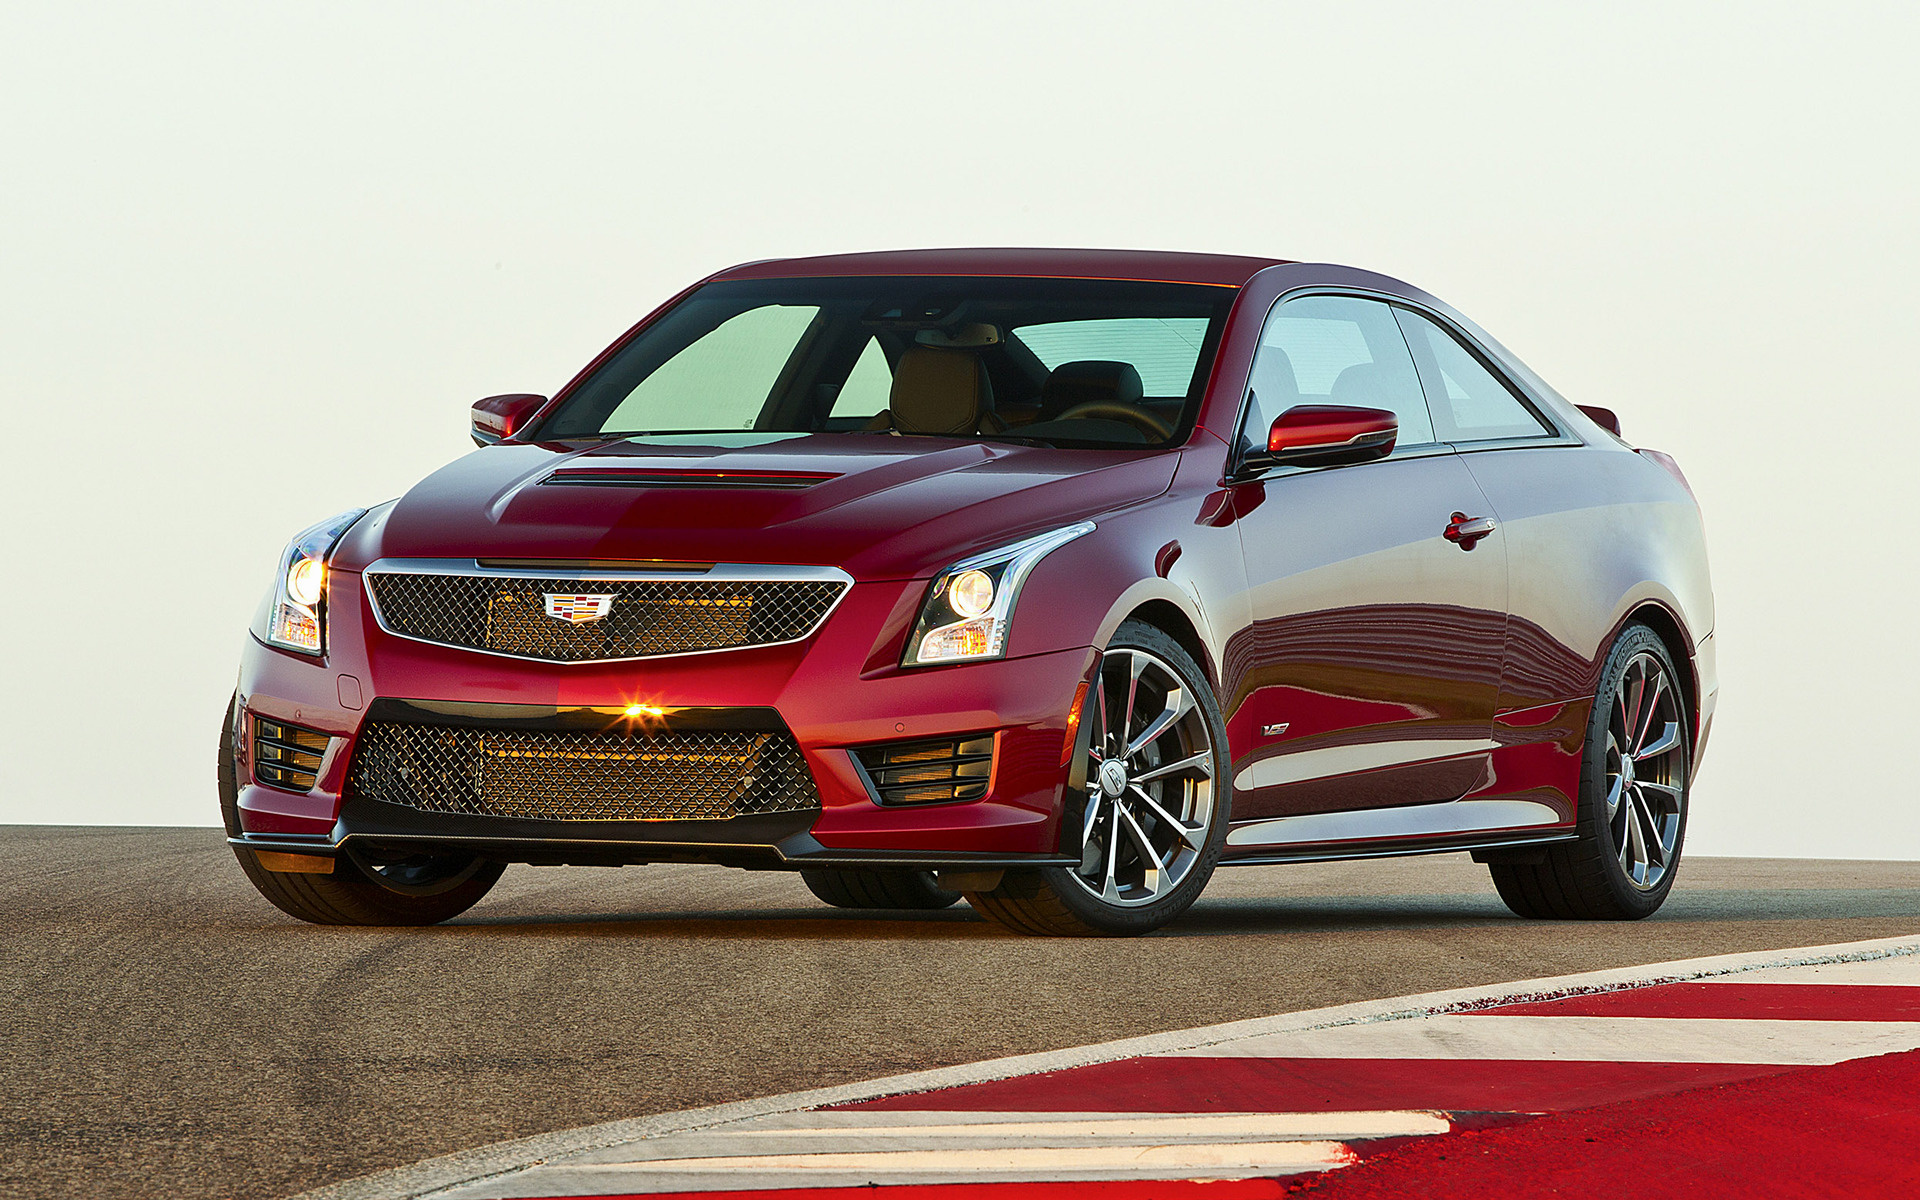 2016 Hyundai Genesis Coupe >> 2016 Cadillac ATS-V Coupe - Wallpapers and HD Images | Car ...